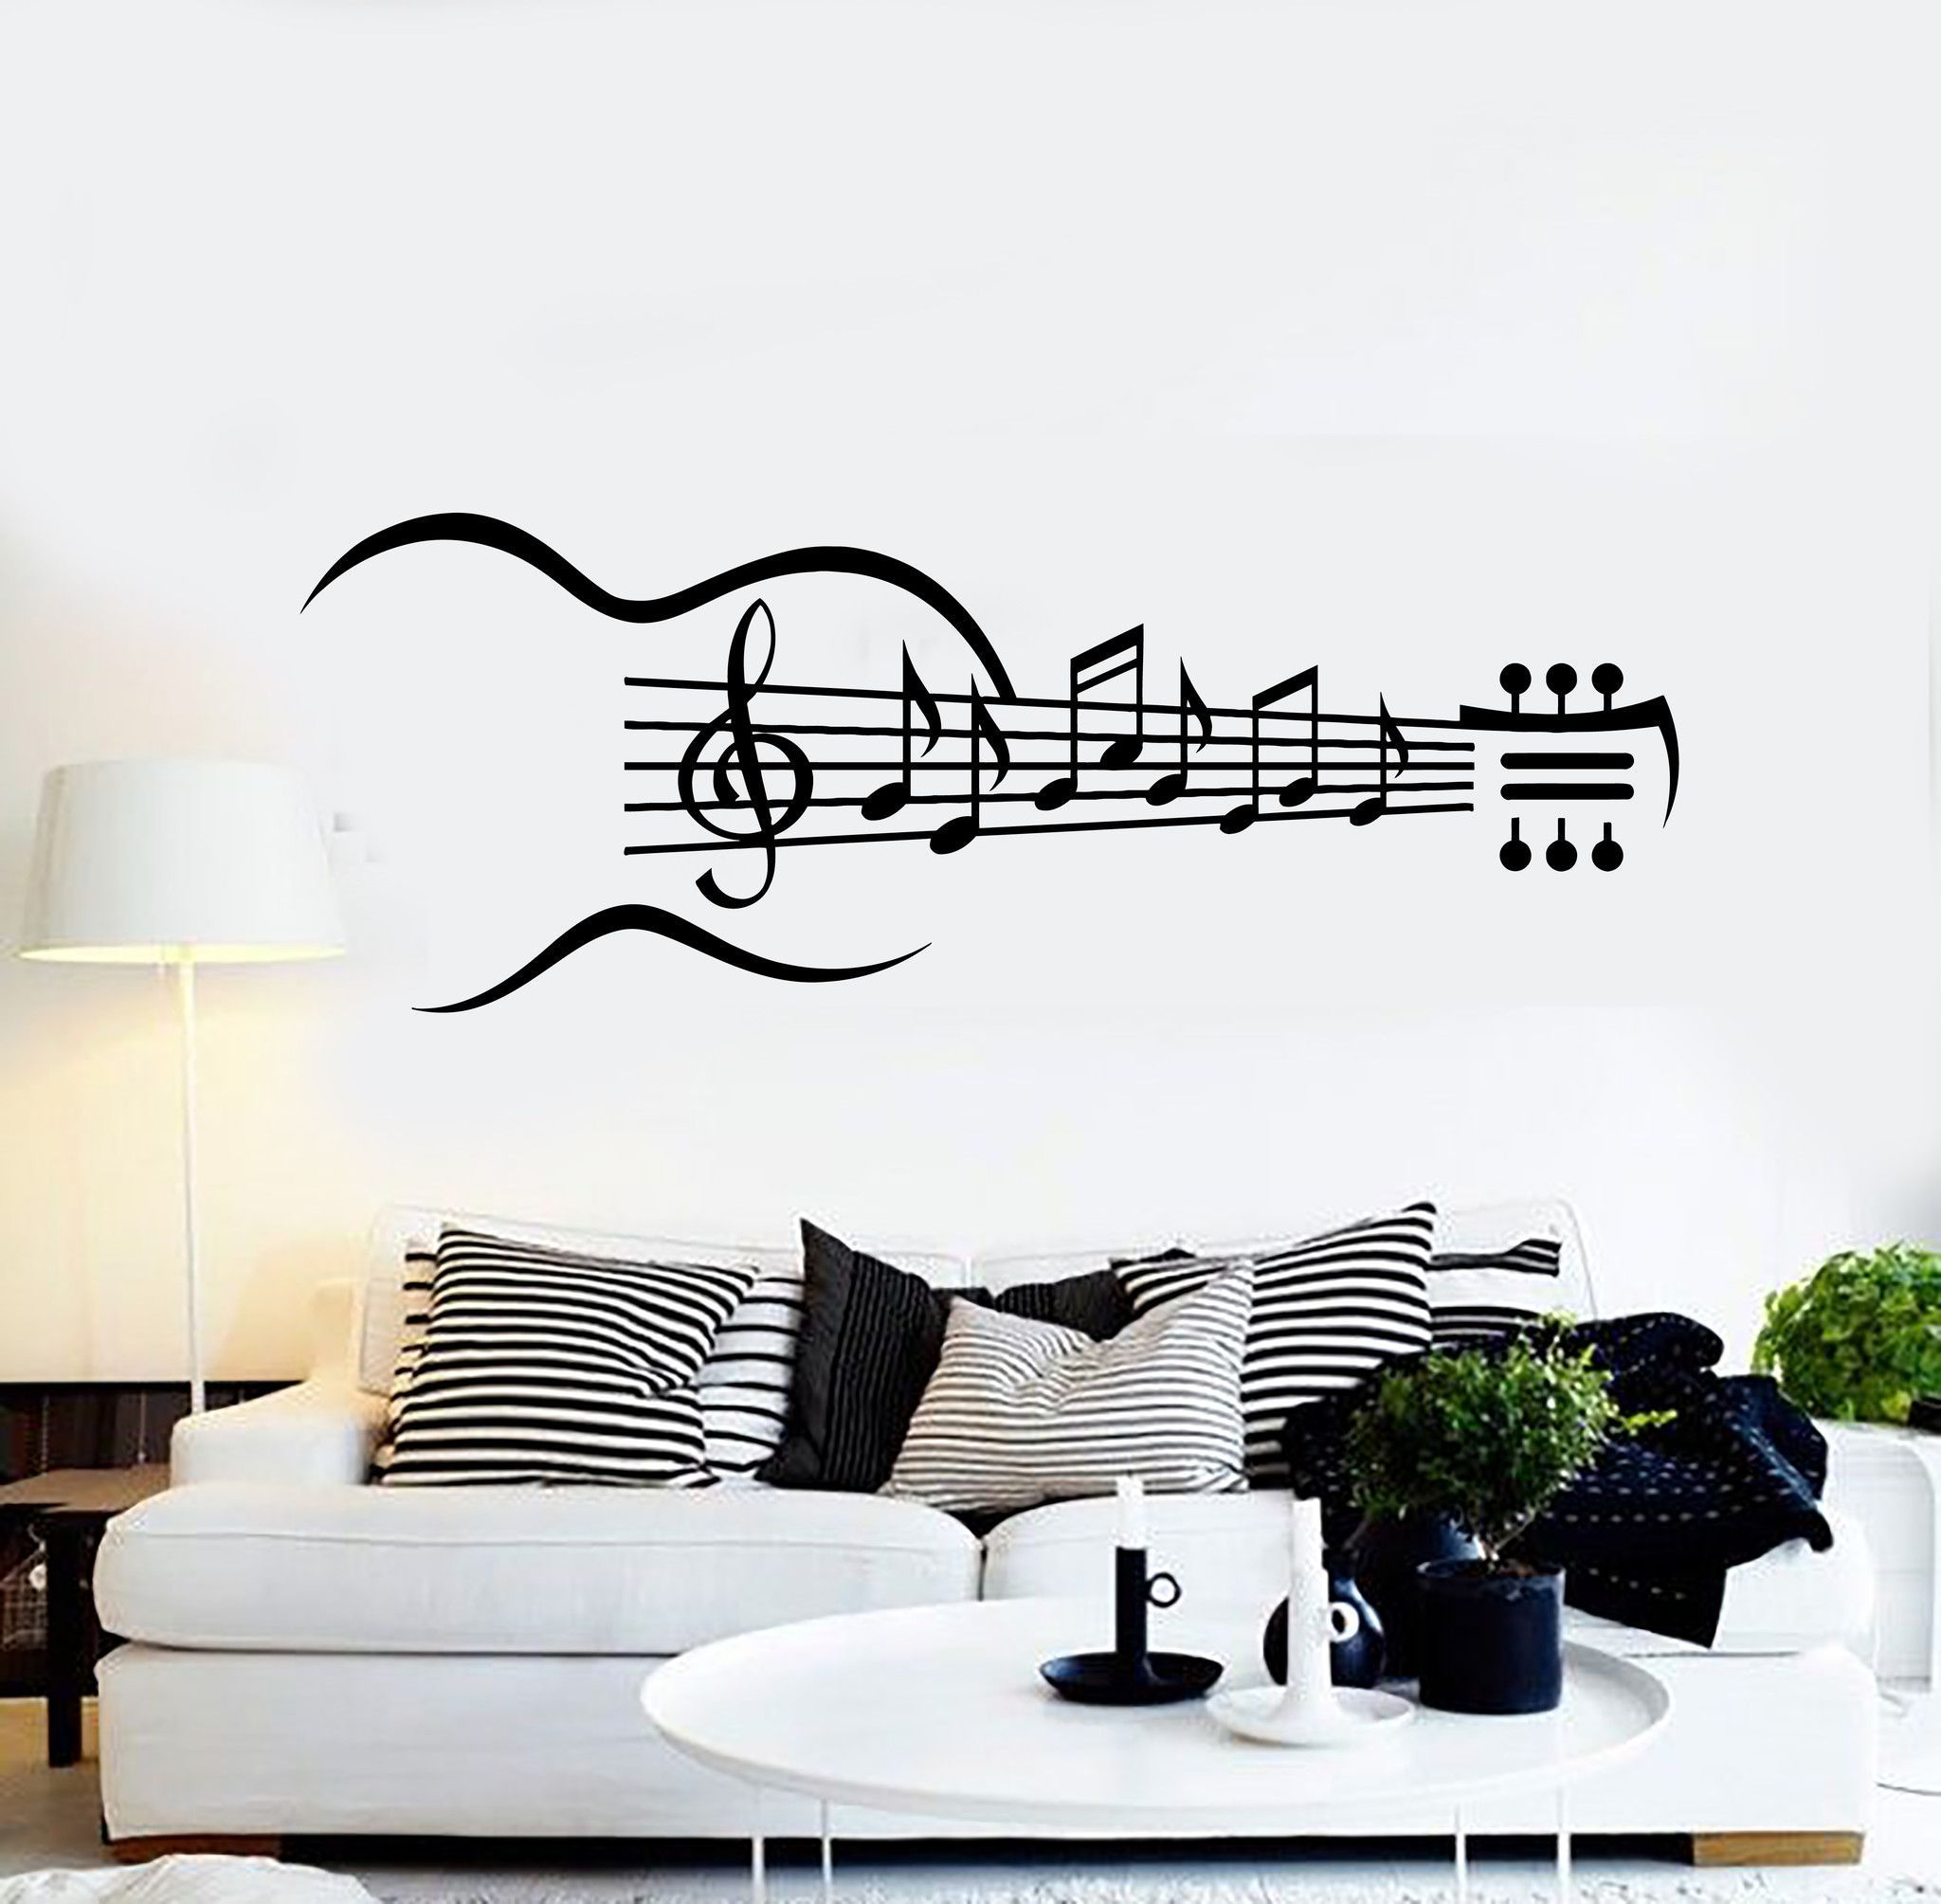 Vinyl Wall Decal Guitar Musical Instrument Music Notes Stickers Ig4353 Nurserystickers Music Room Decor Music Wall Decor Music Wall Decal